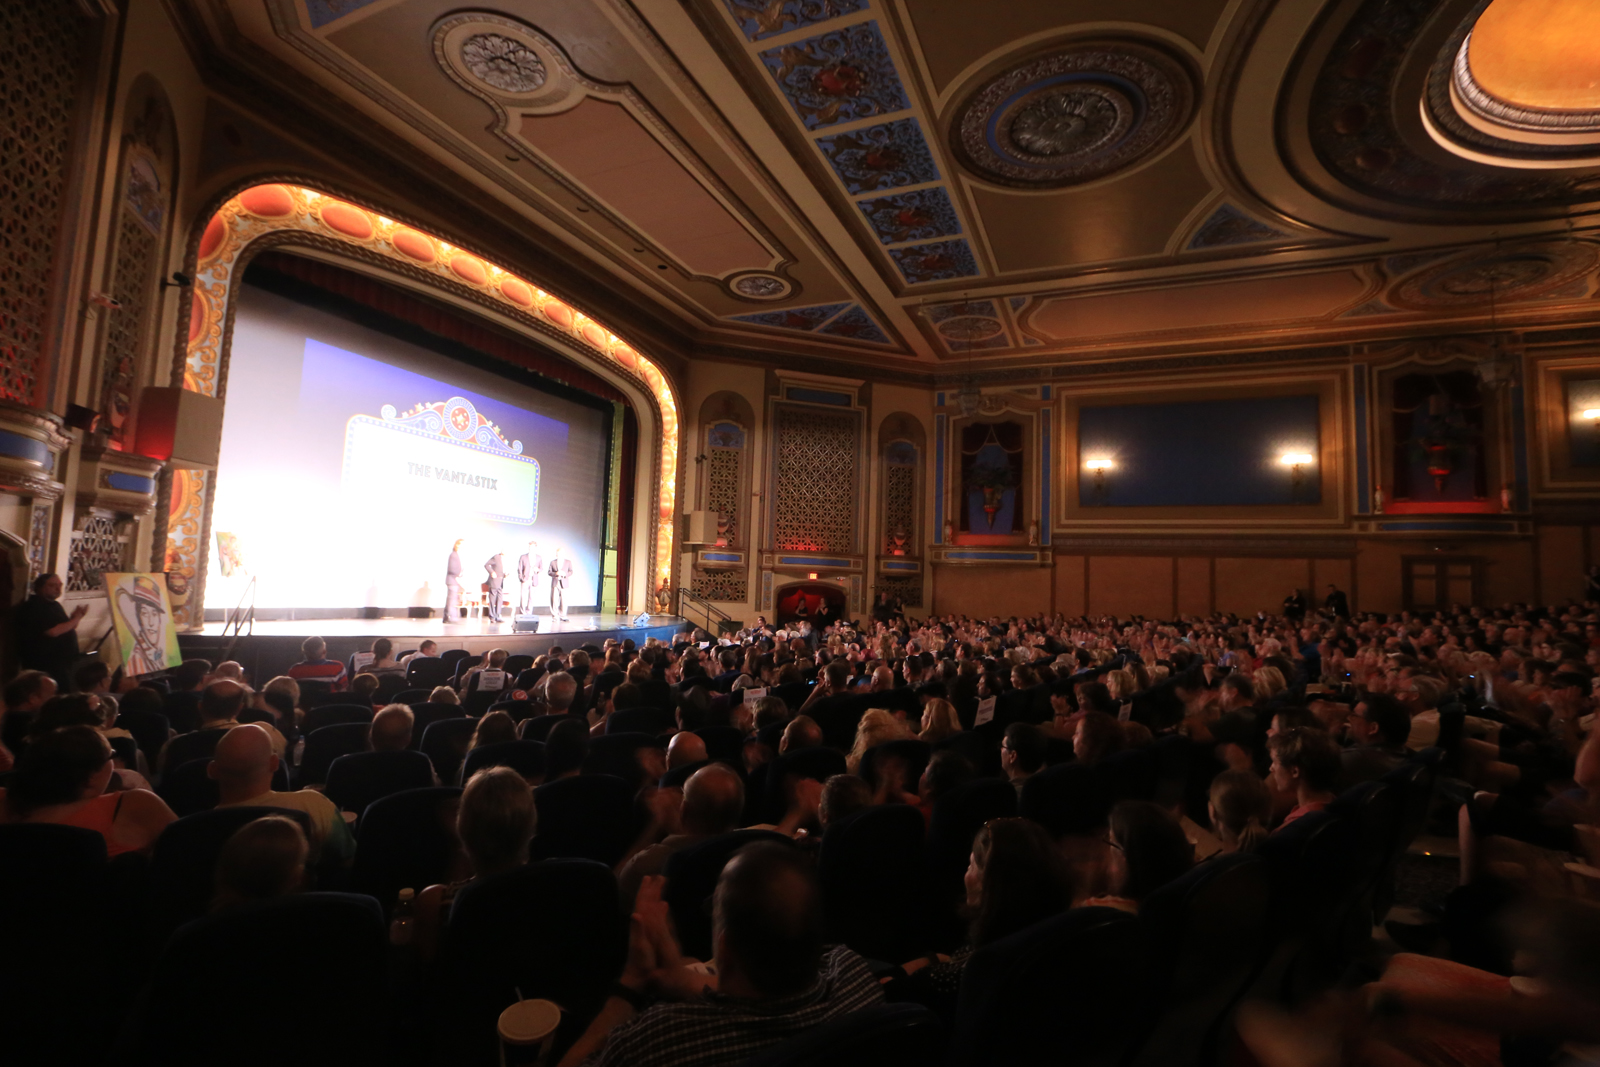 Tivoli Theater In Downers Grove Day Of Magic With Dick Van Dyke The Walt Disney Birthplace